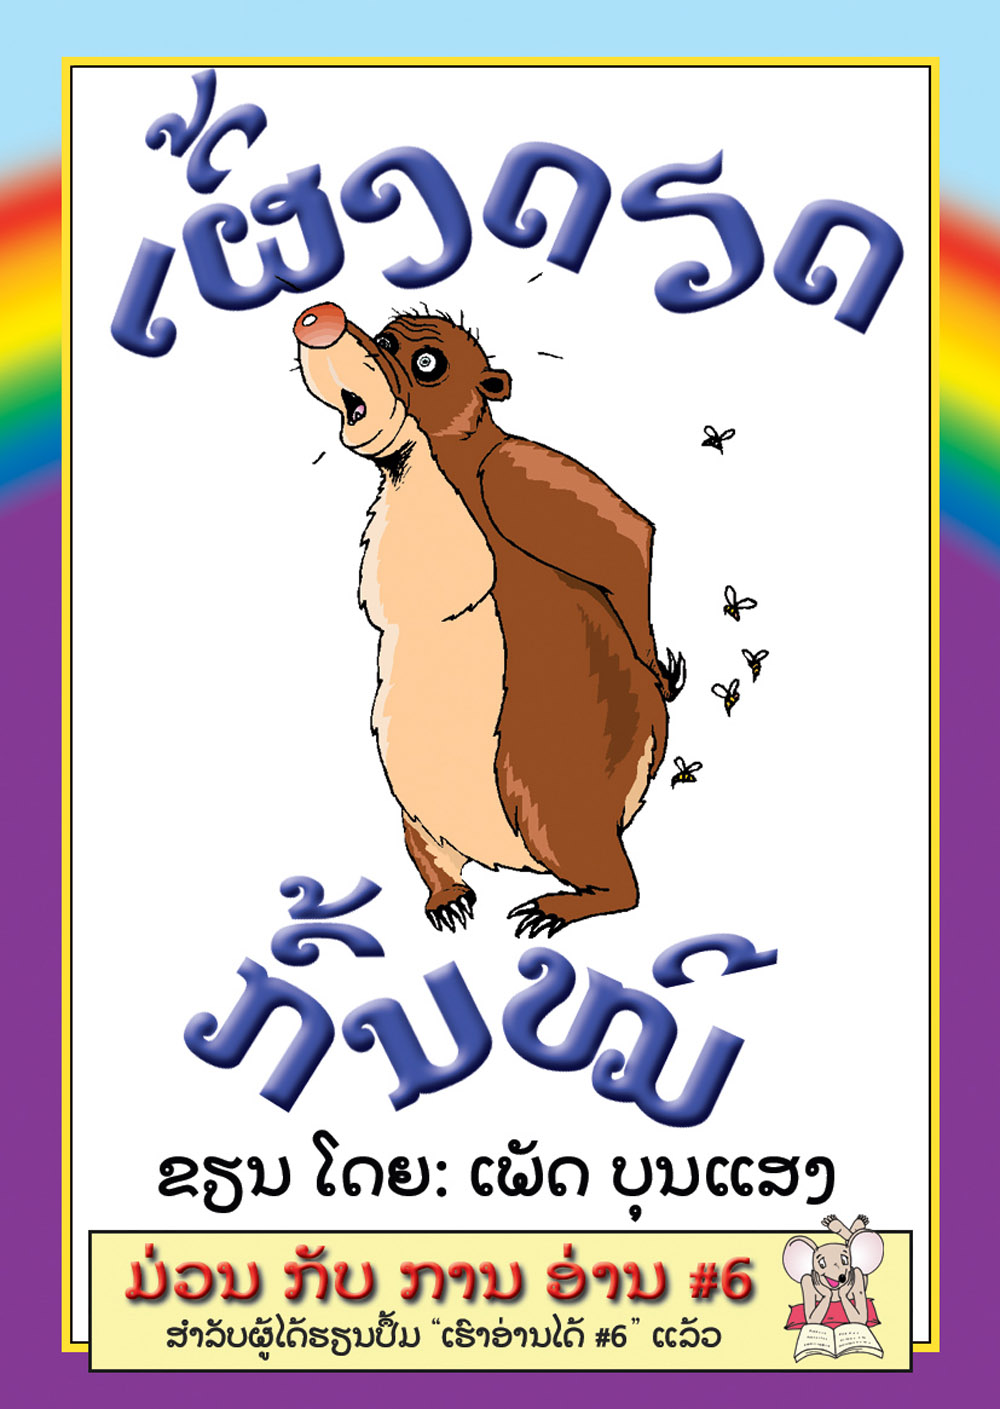 The Bees Sting the Bear large book cover, published in Lao language